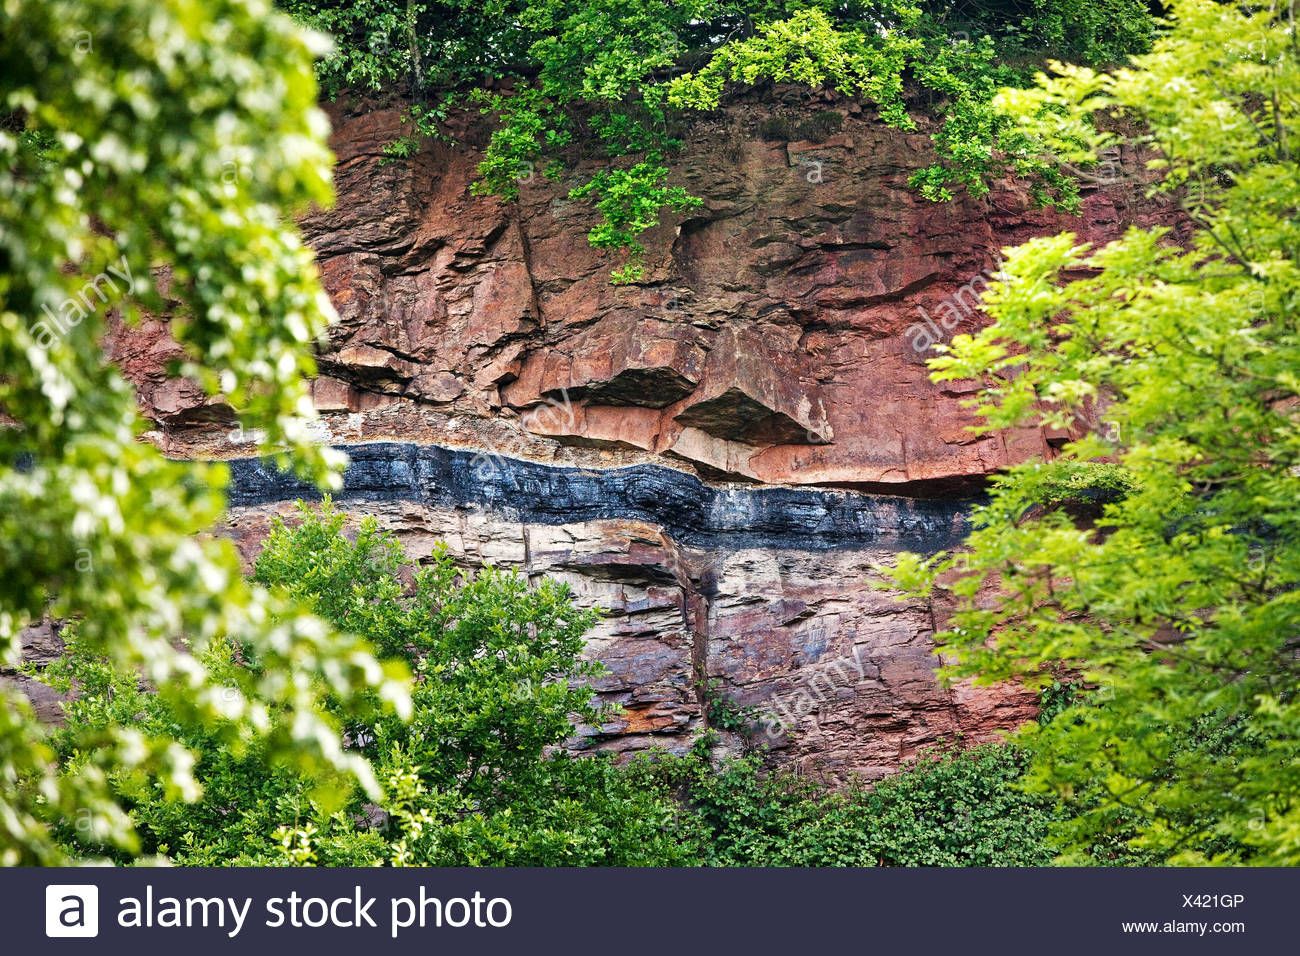 Geological outcrop with overground coal seam, Witten, Ruhr district, North Rhine-Westphalia, Germany - Stock Image